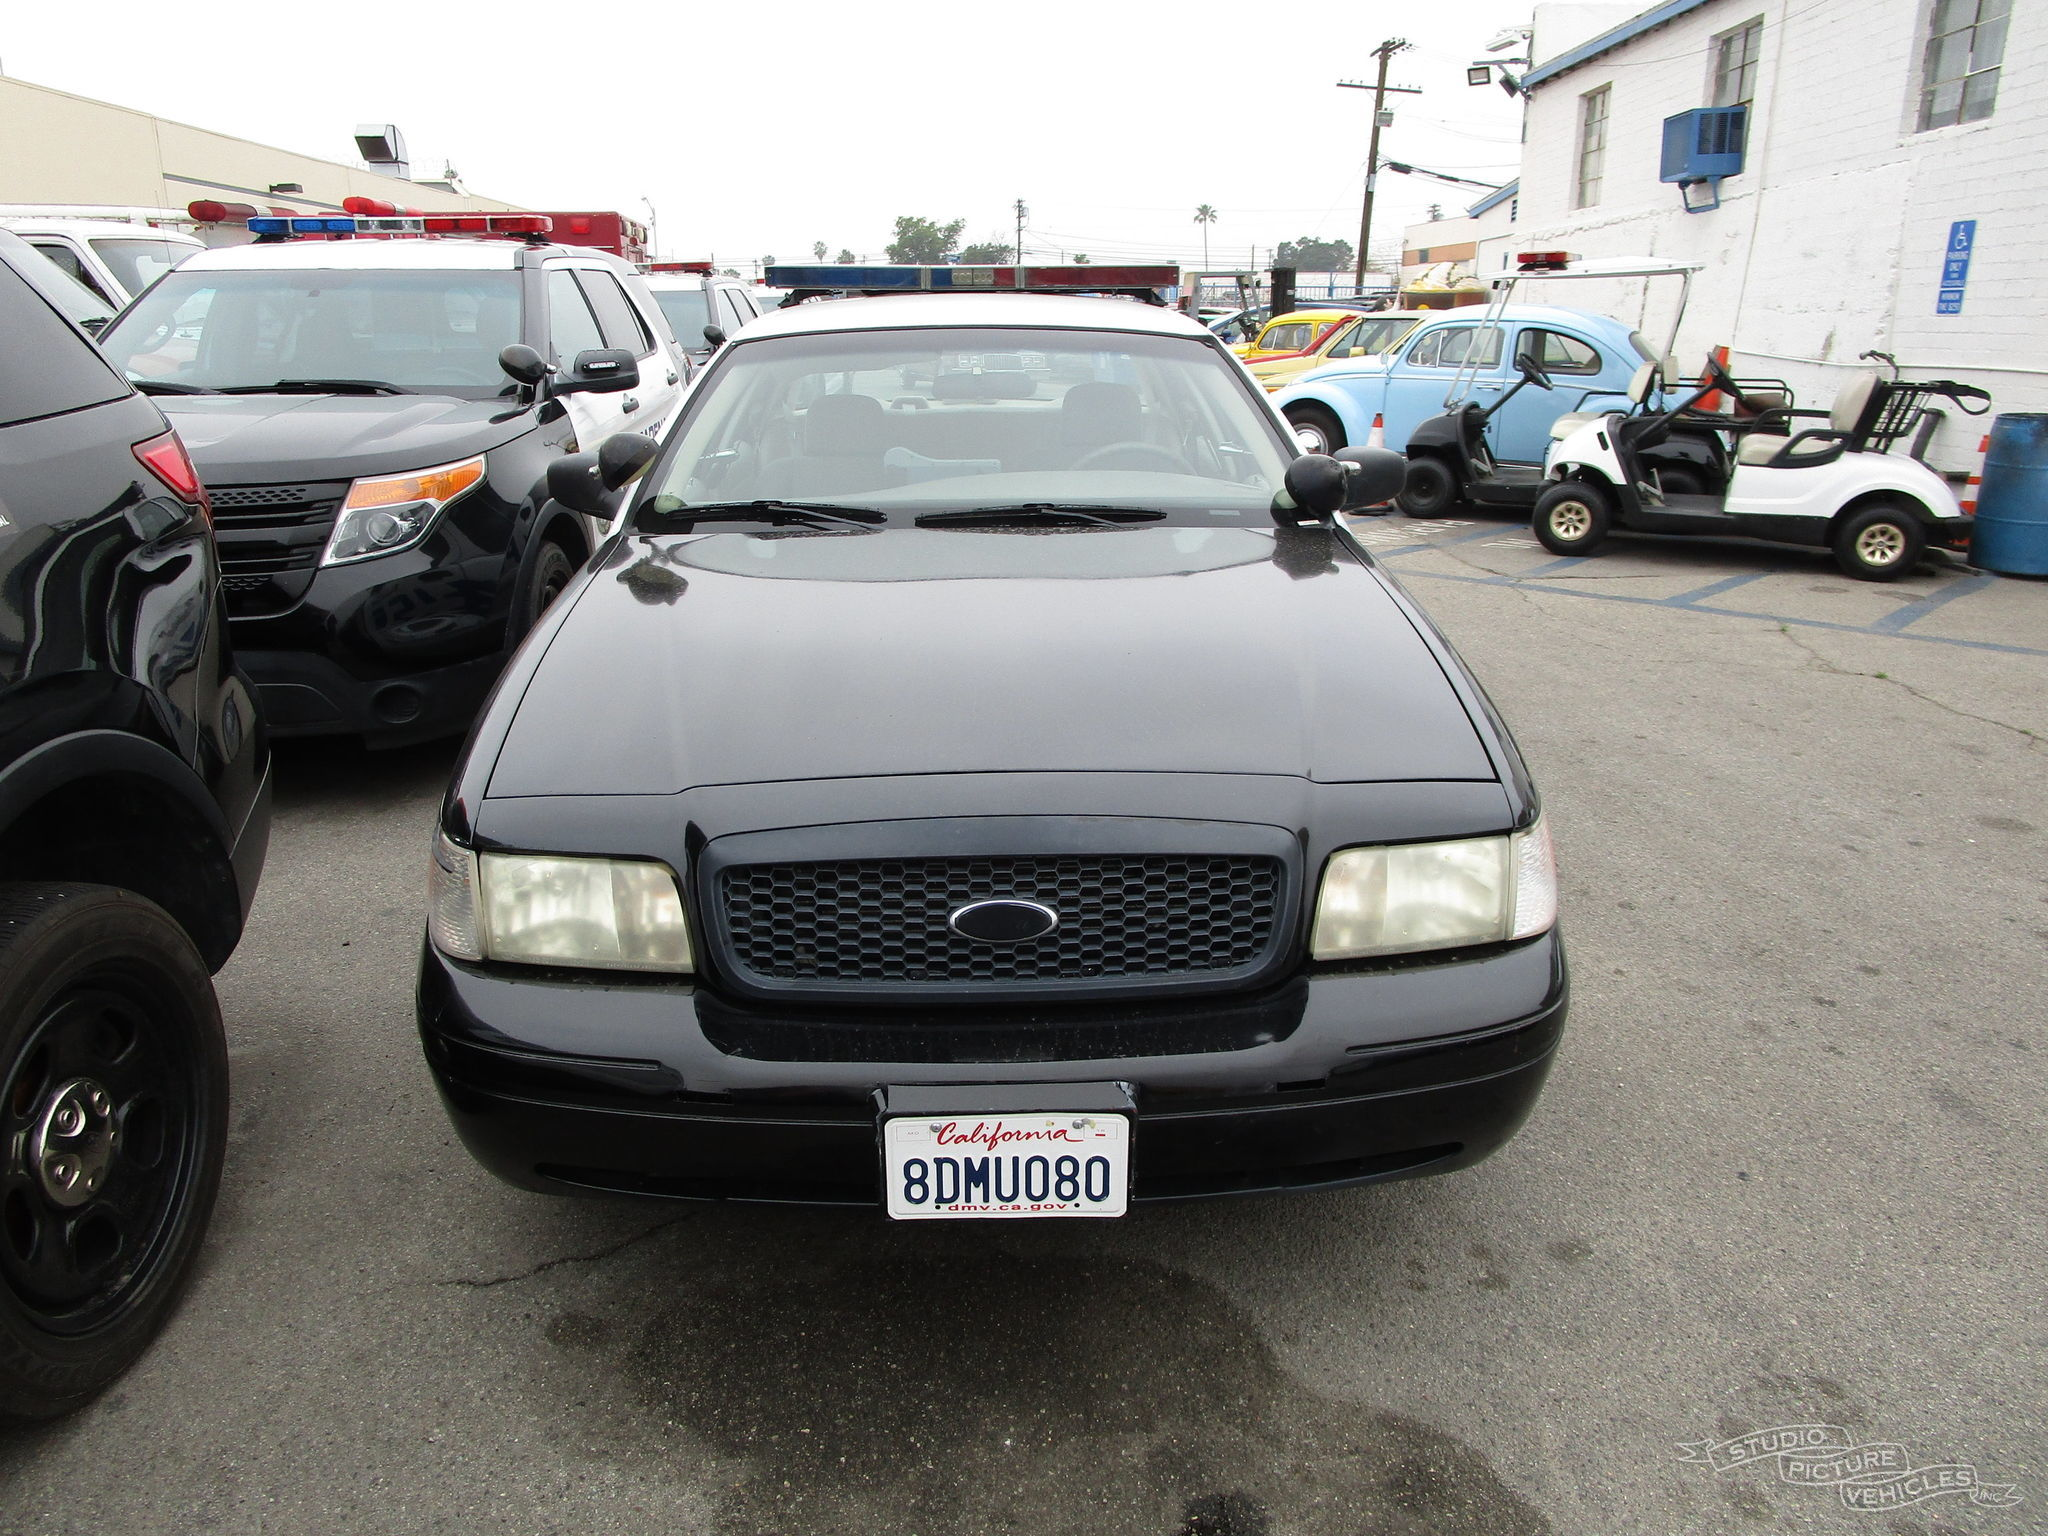 Ford Crown Victoria Police Car | Studio Picture Vehicles